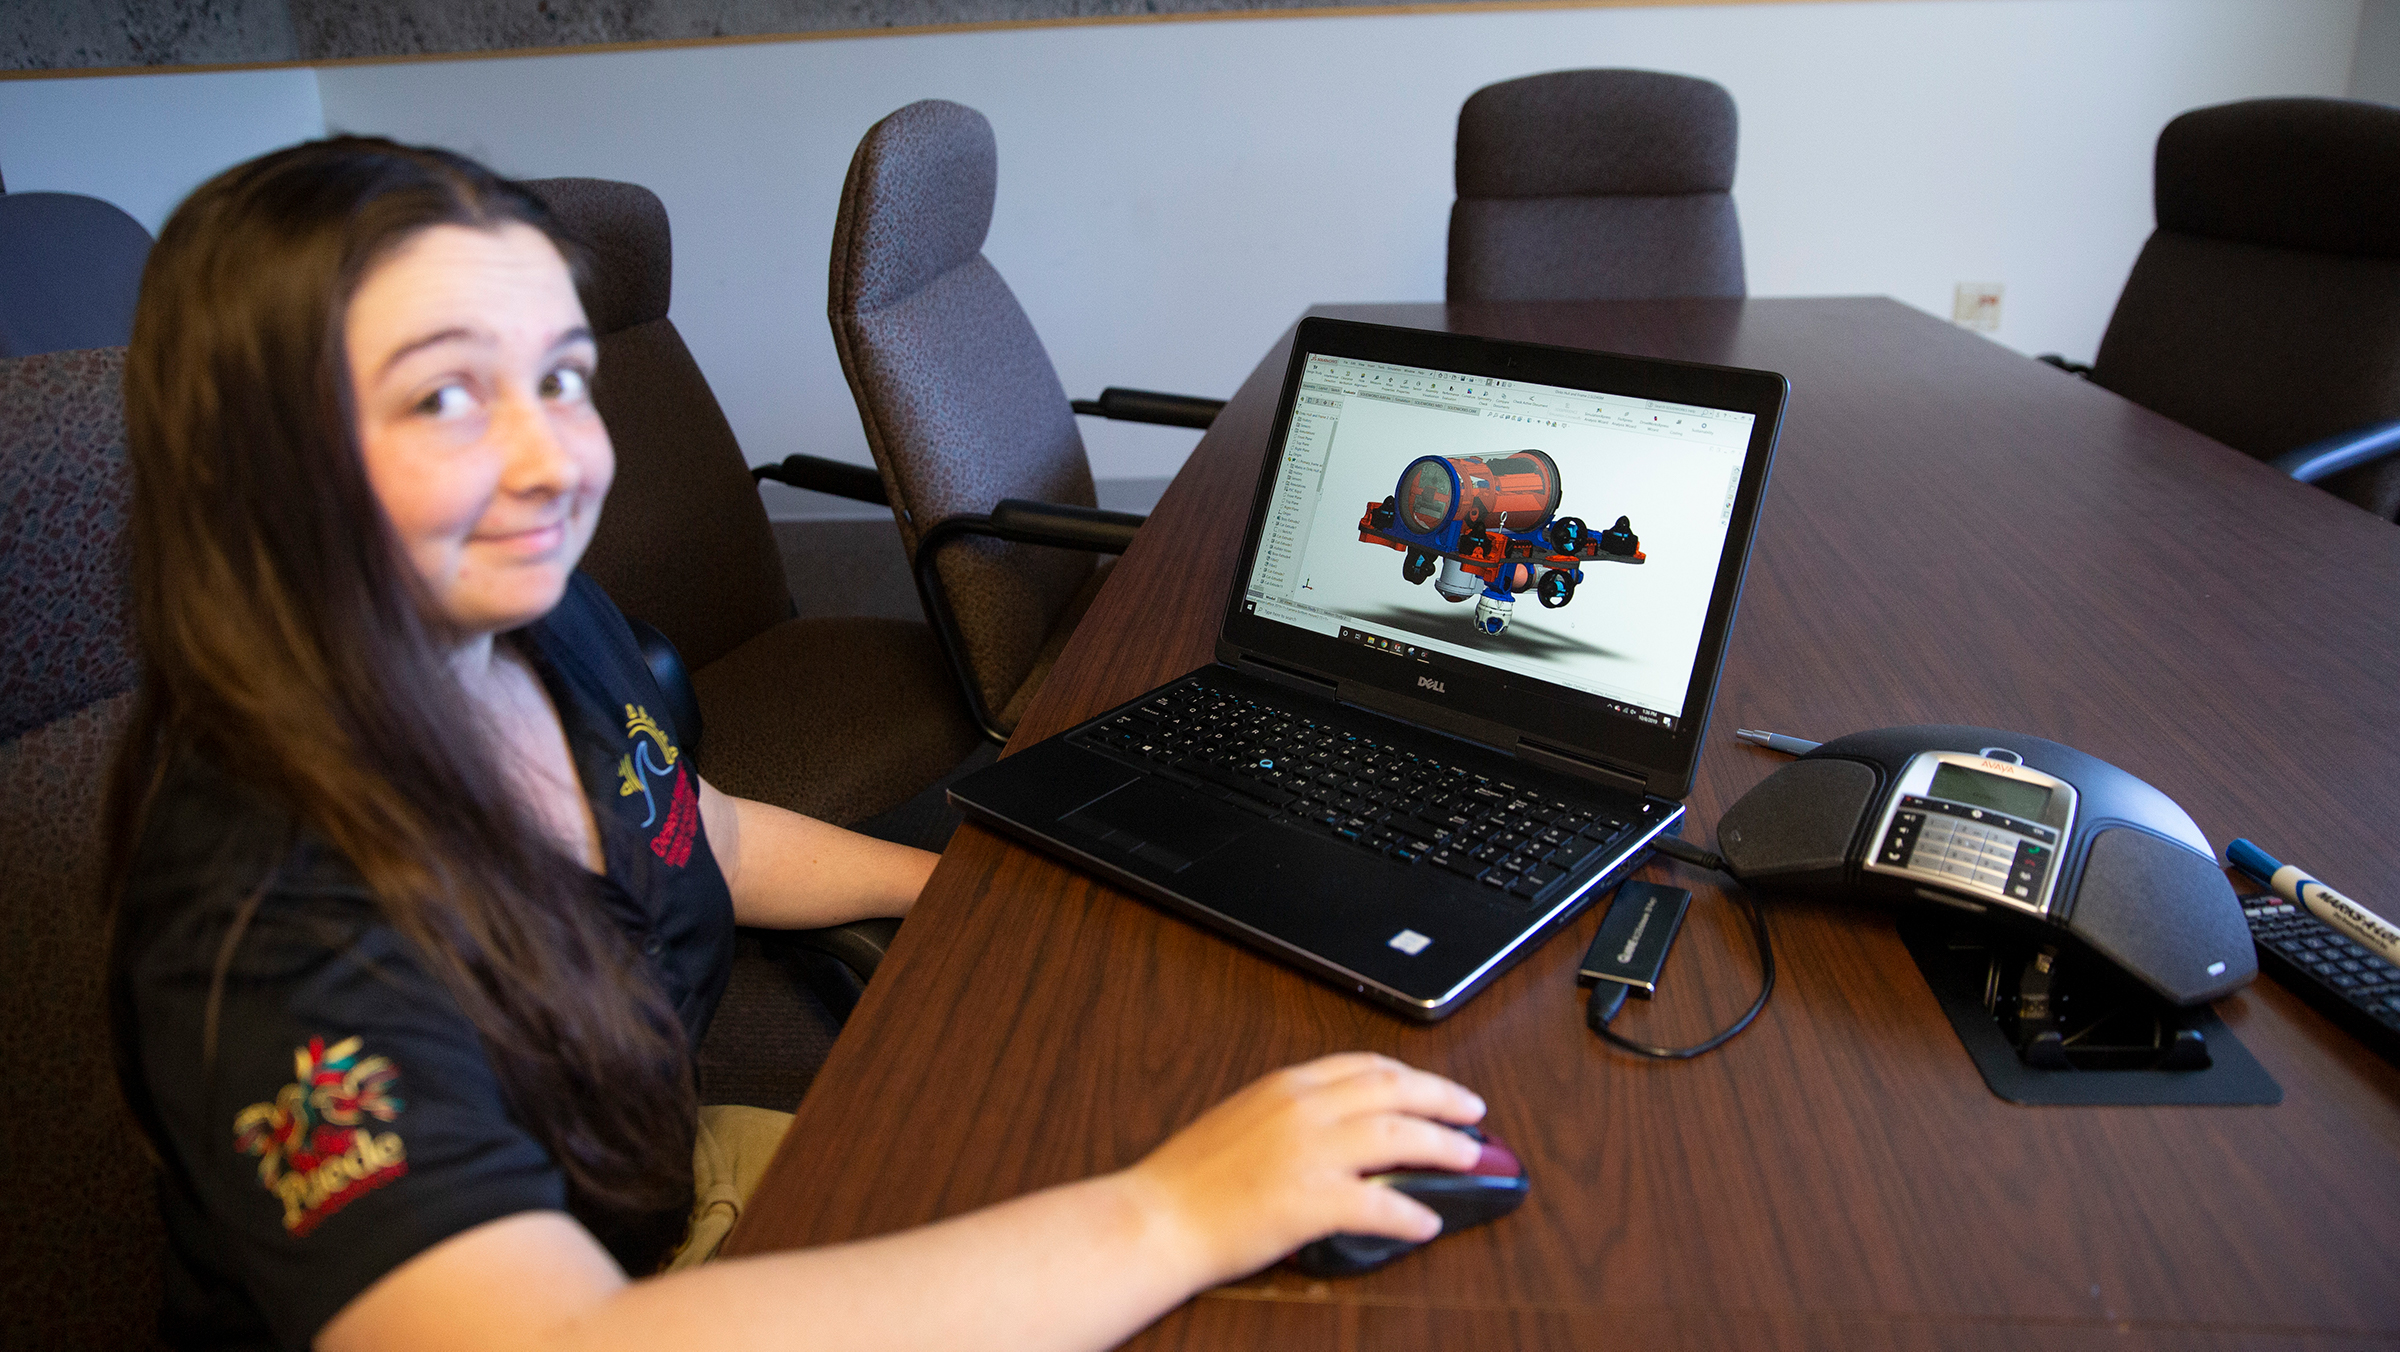 female student sitting in front of a laptop with a submarine on the screen